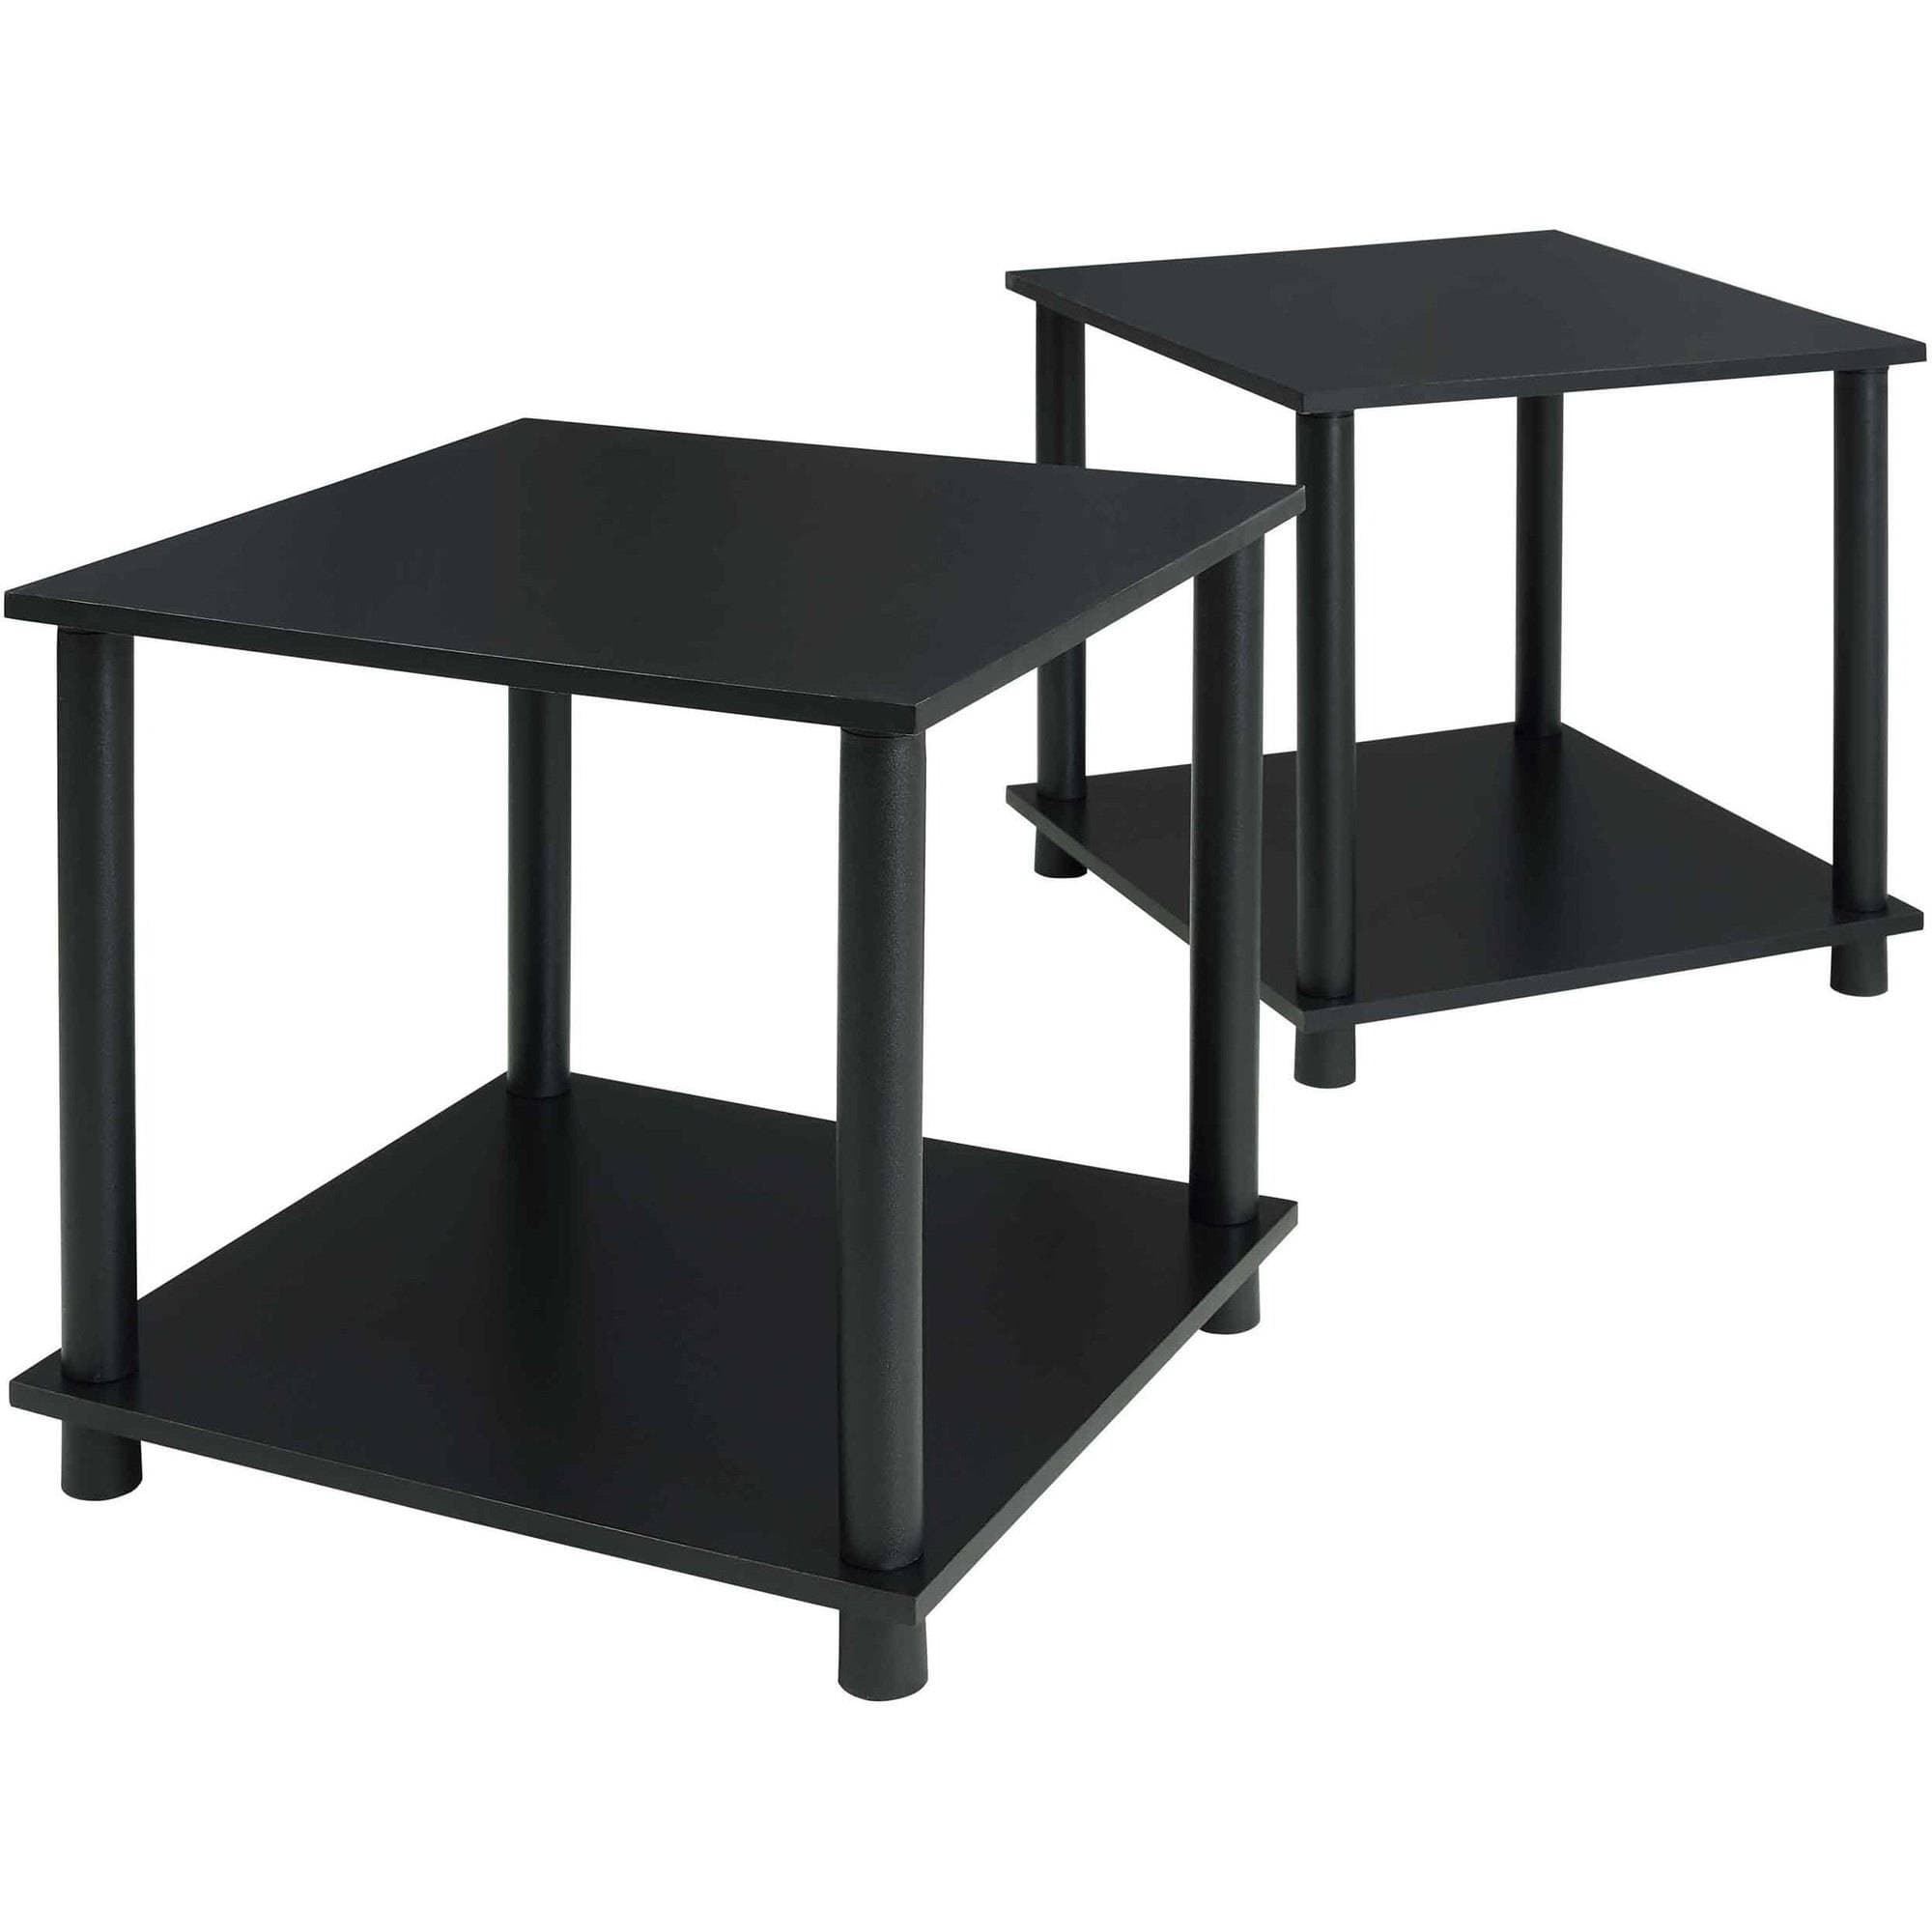 2 Pack Mainstays End Tables Black Slickdeals